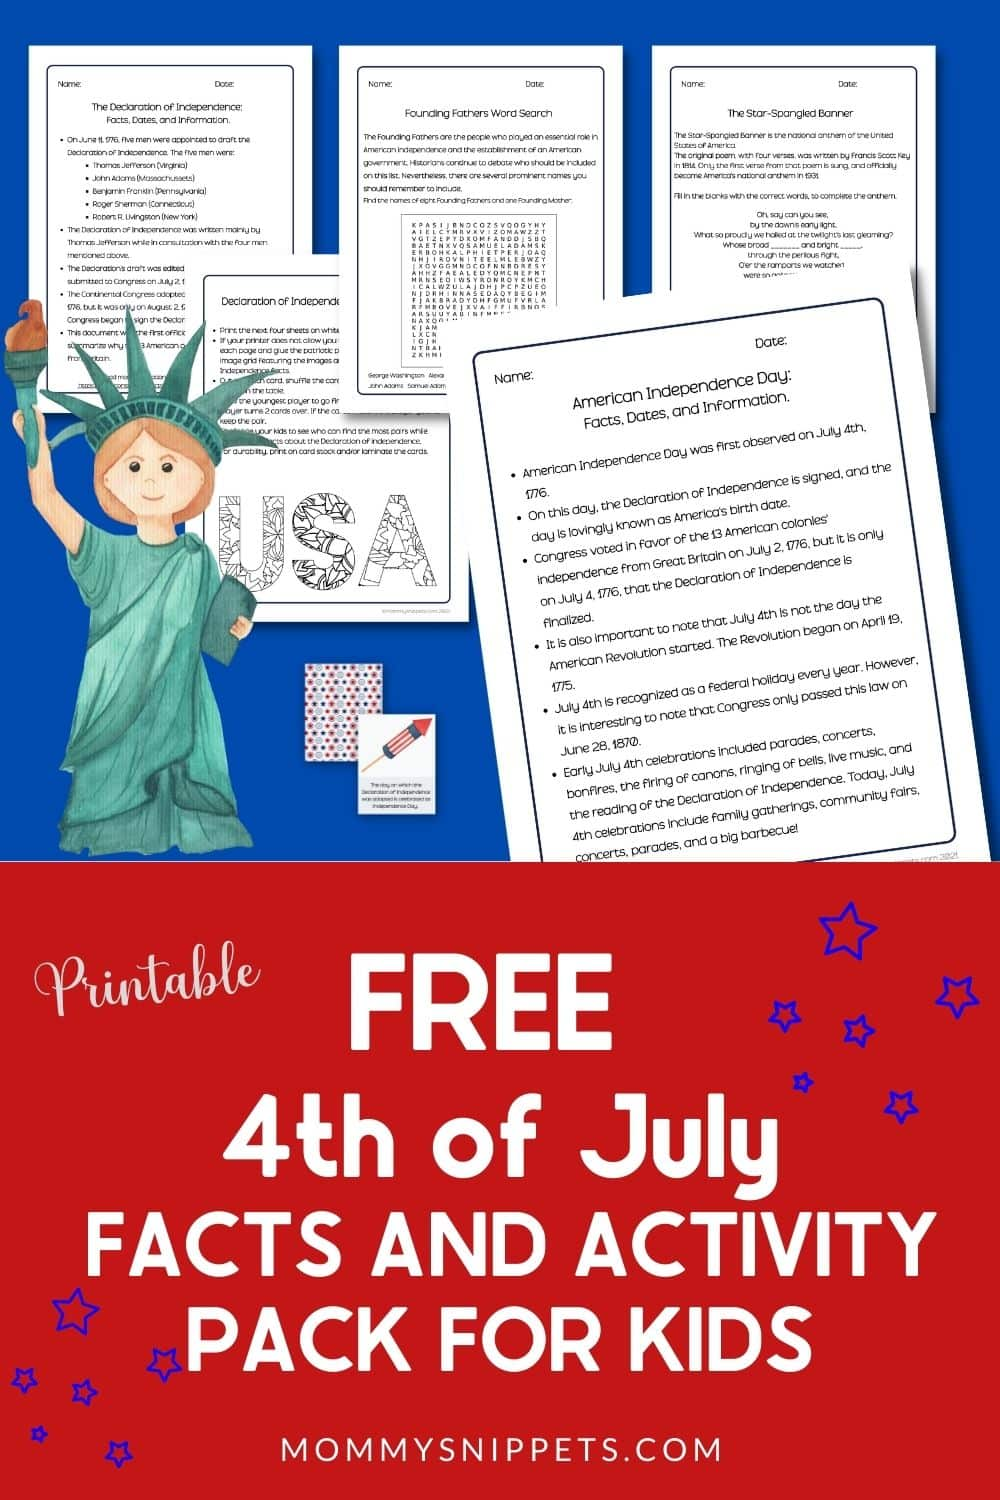 FREE 4th of July Facts and Activity Pack for Kids- MommySnippets.com